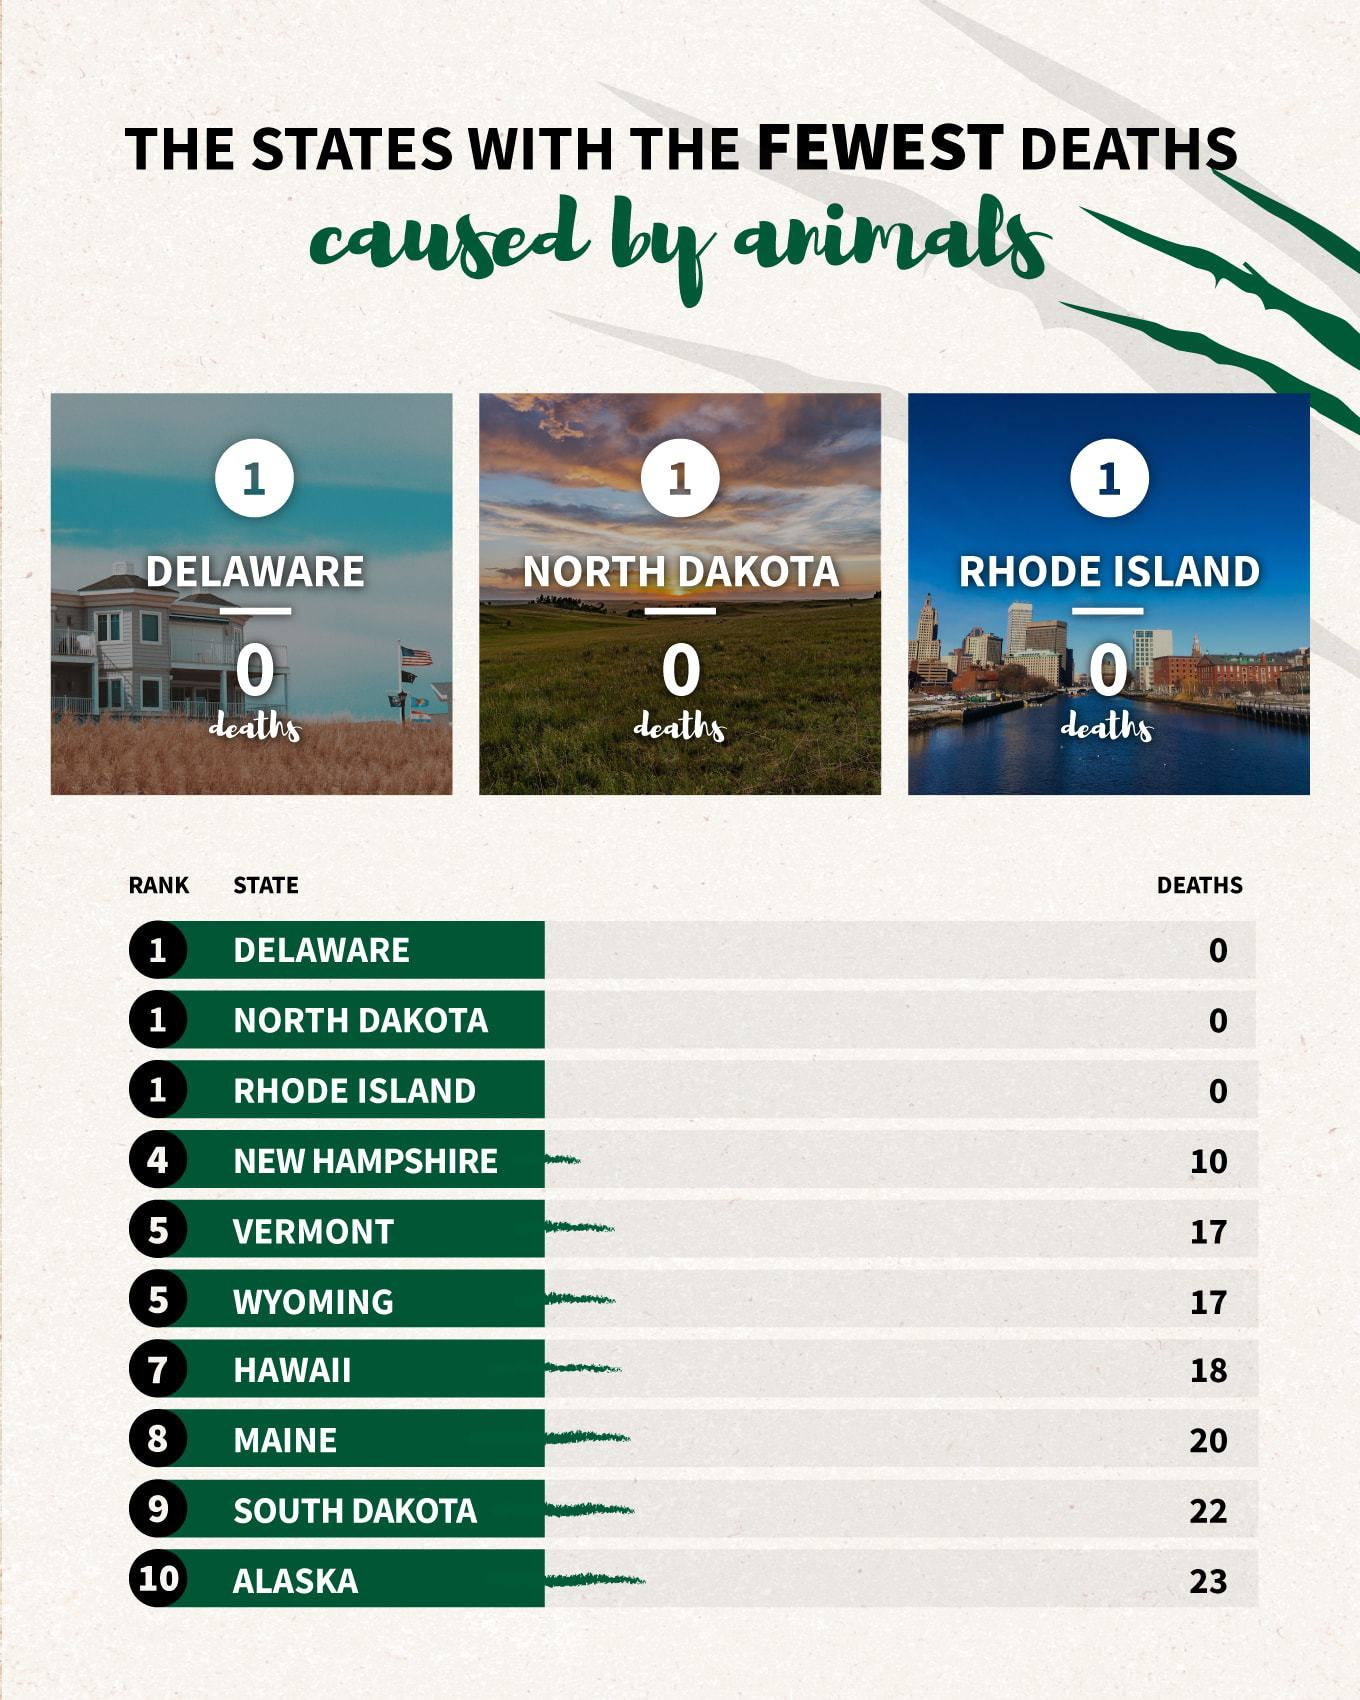 The states with the fewest deaths caused by animals infographic